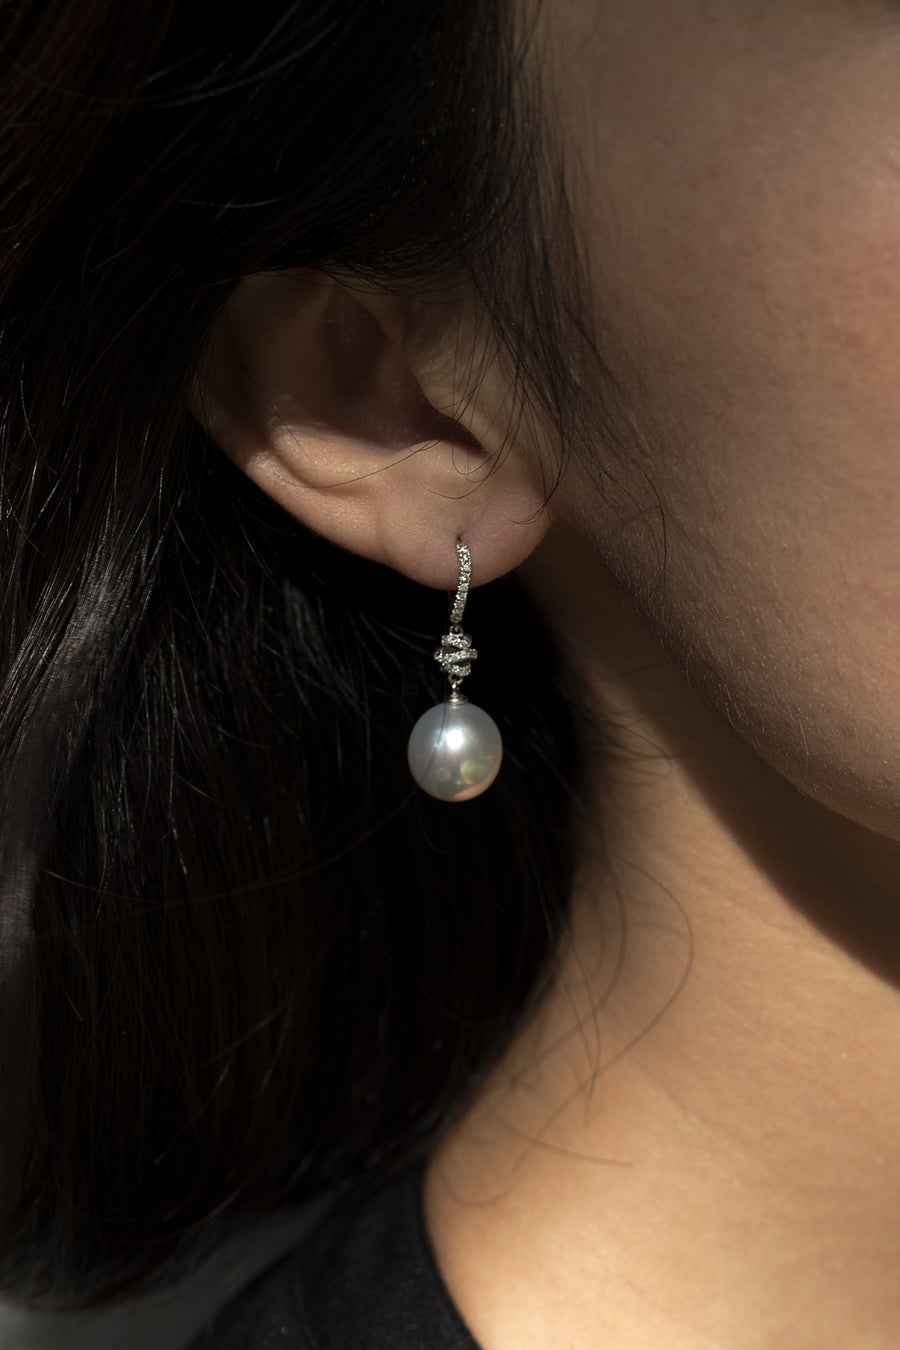 18 Karat Gold Diamond and White South Sea Pearl Earring